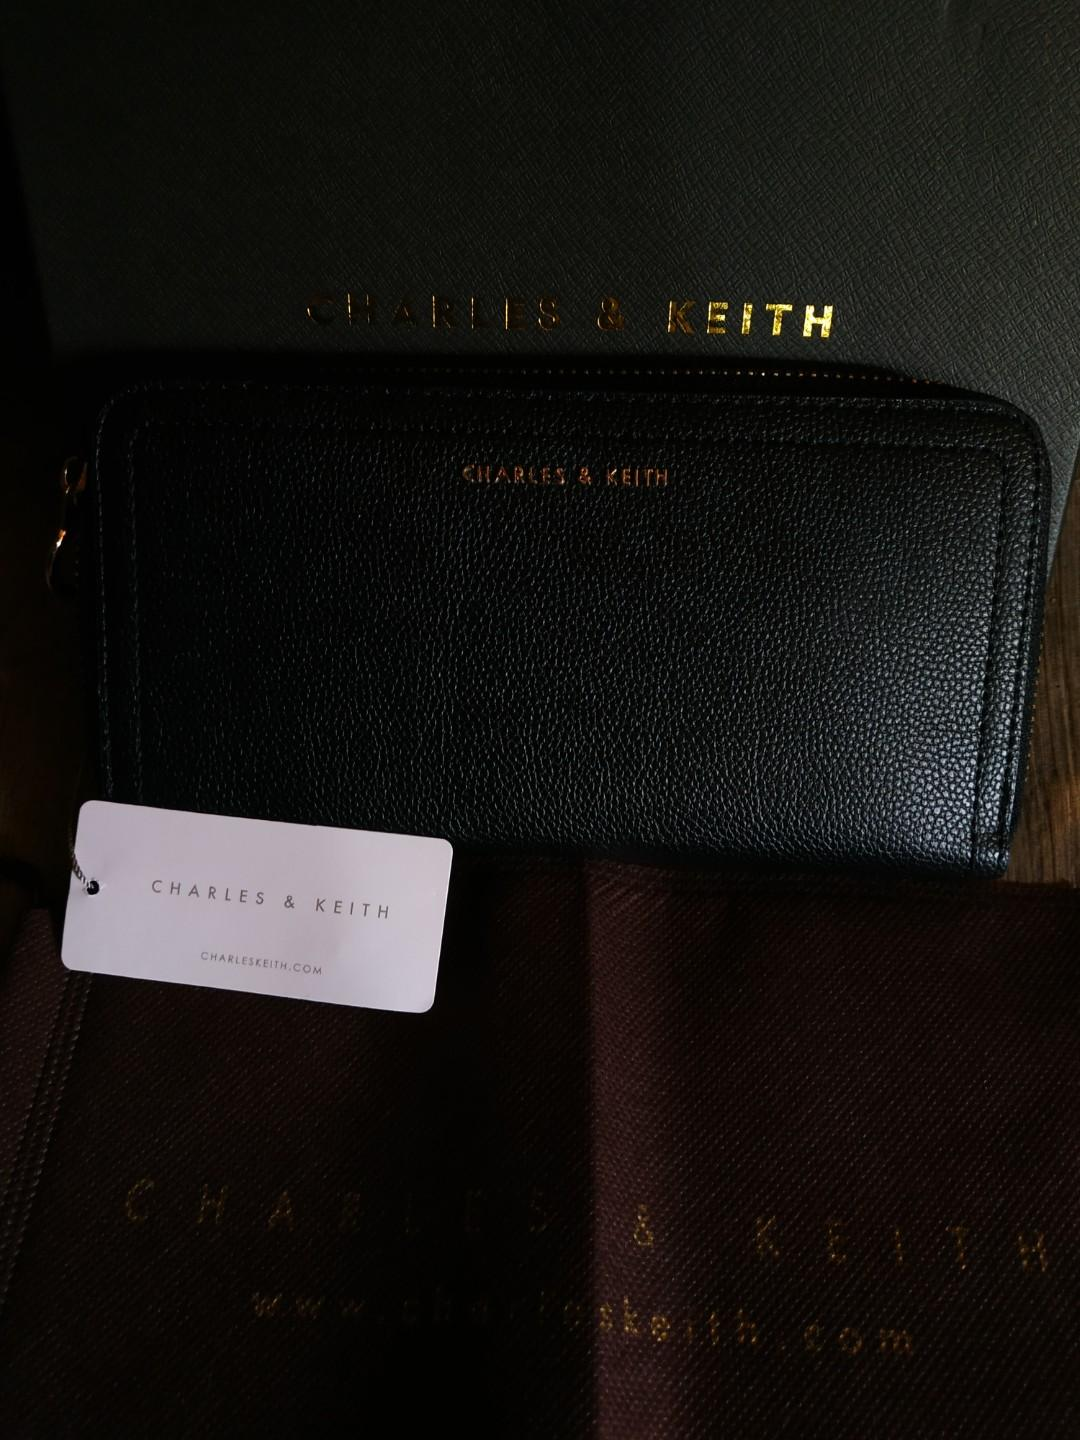 Charles & Keith Wallet (reprice)